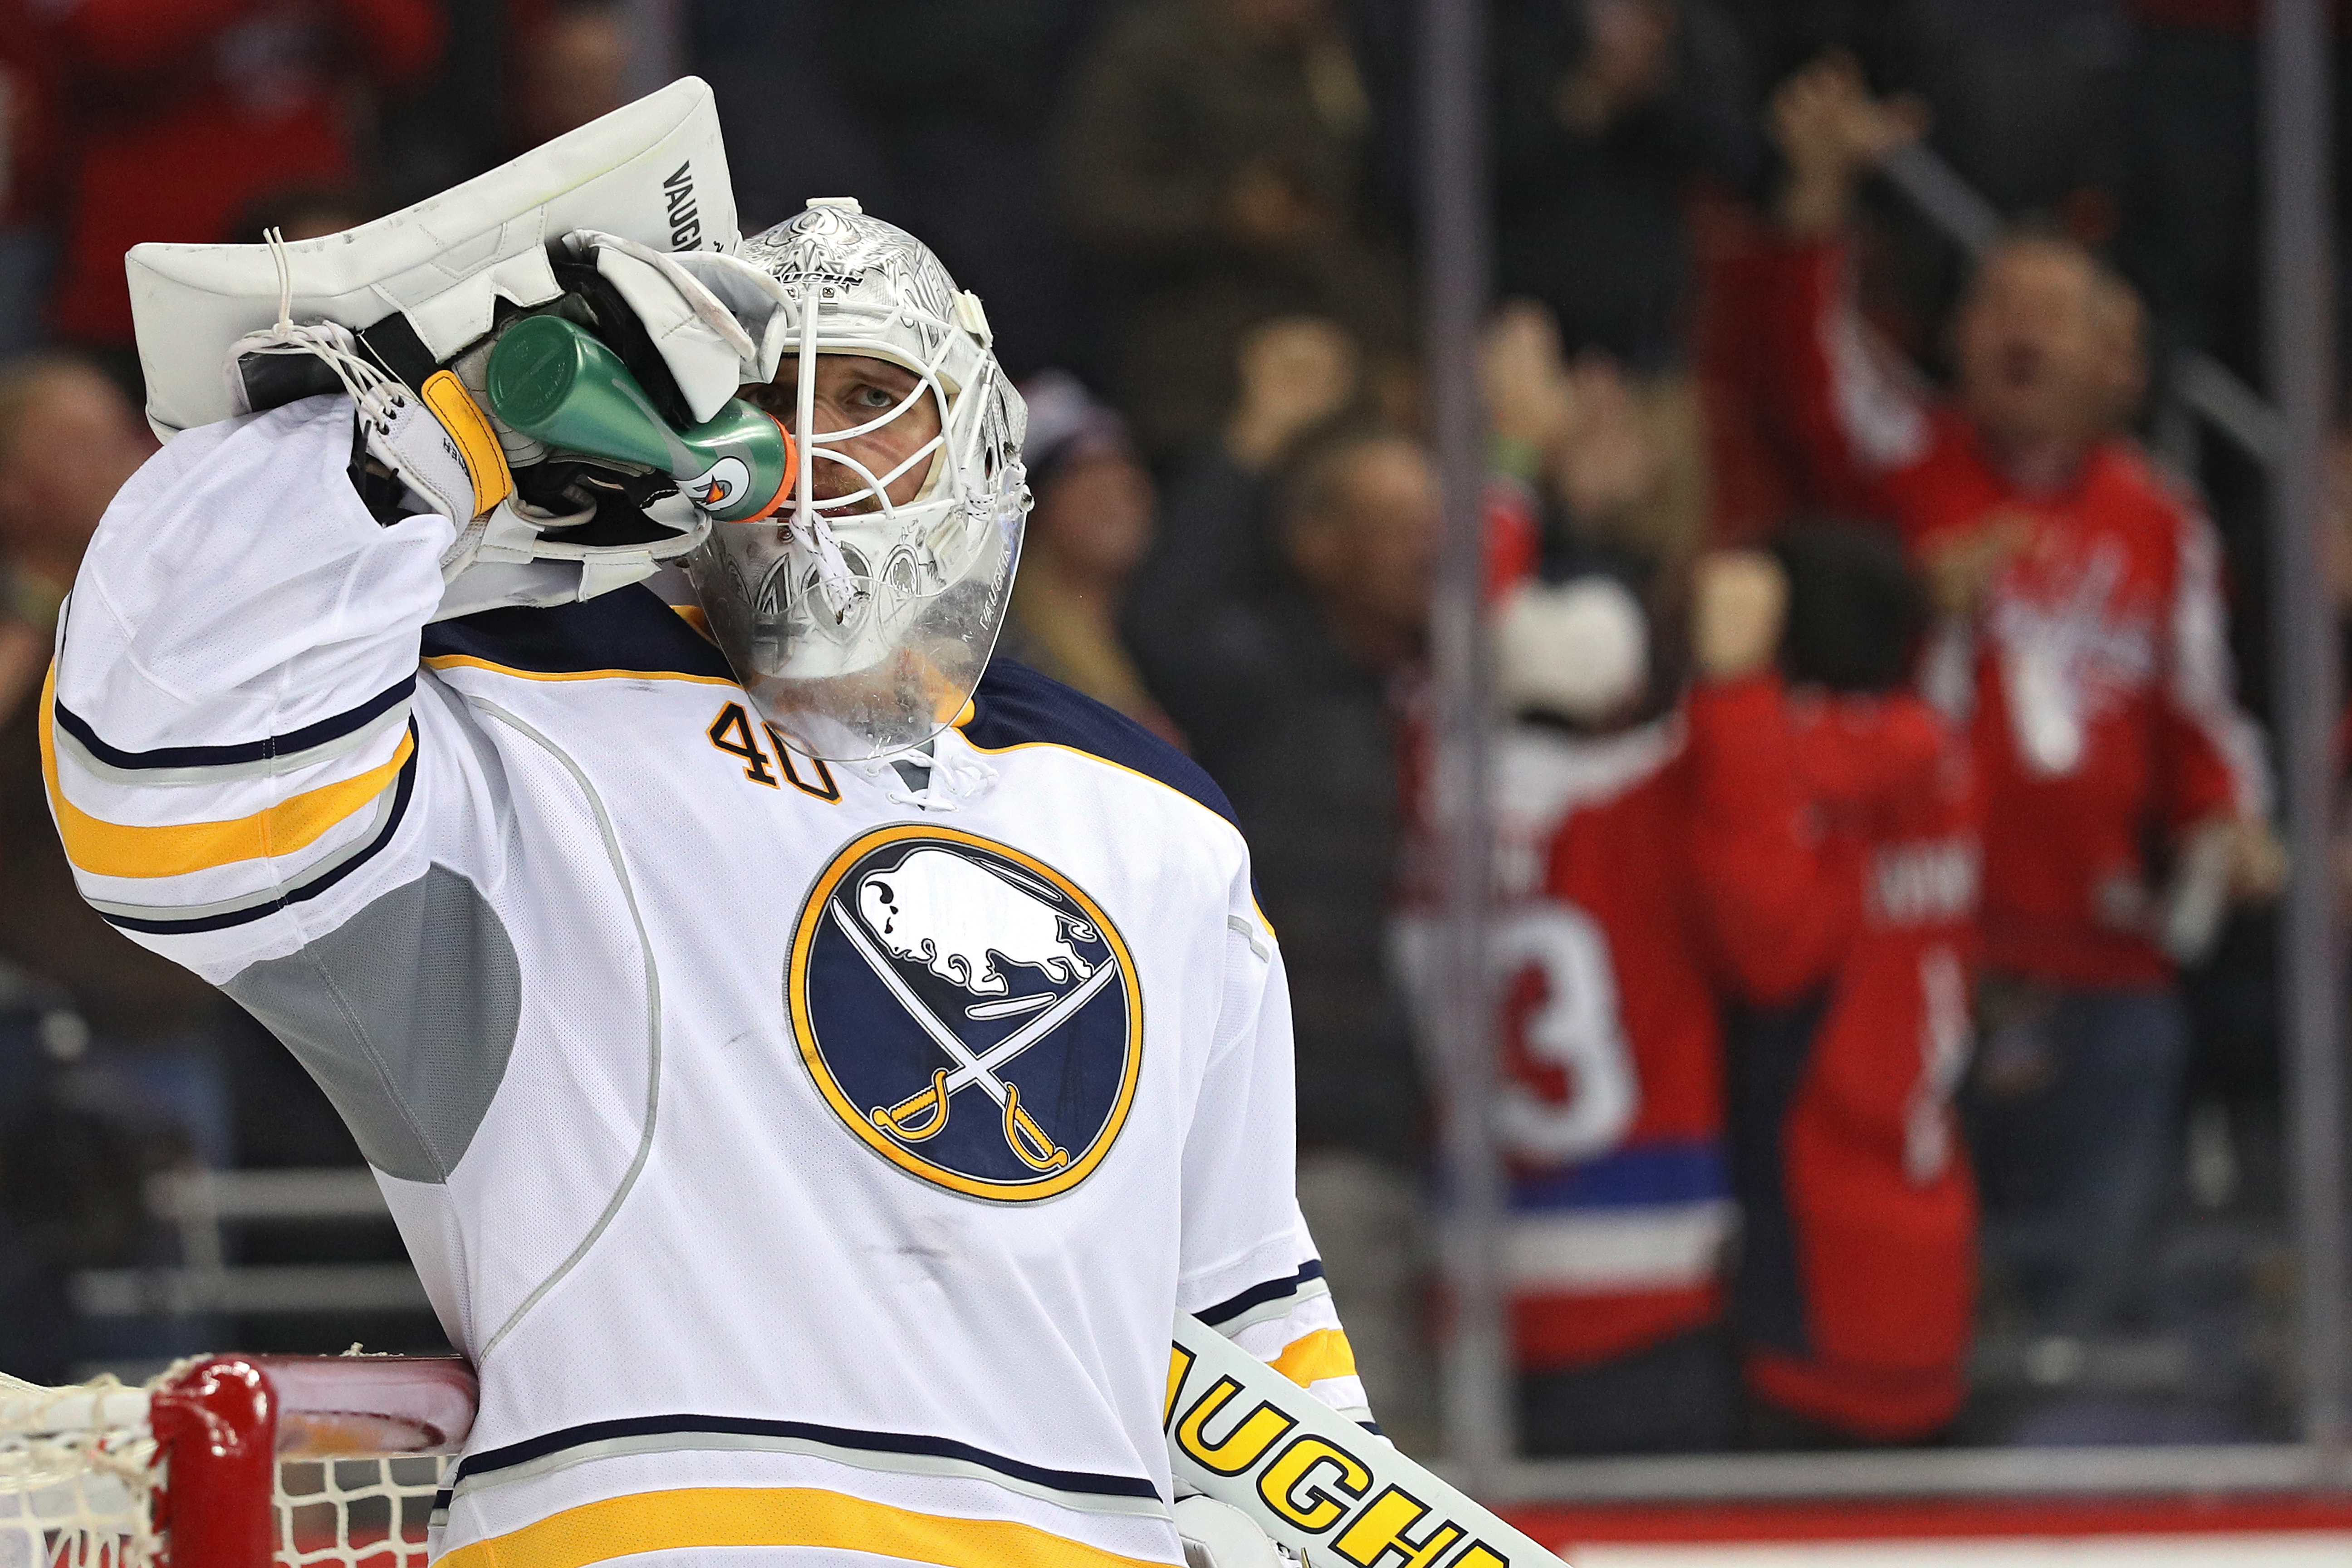 Robin Lehner got hit in the head Saturday in Colorado, and it hurt his neck. (Getty Images)